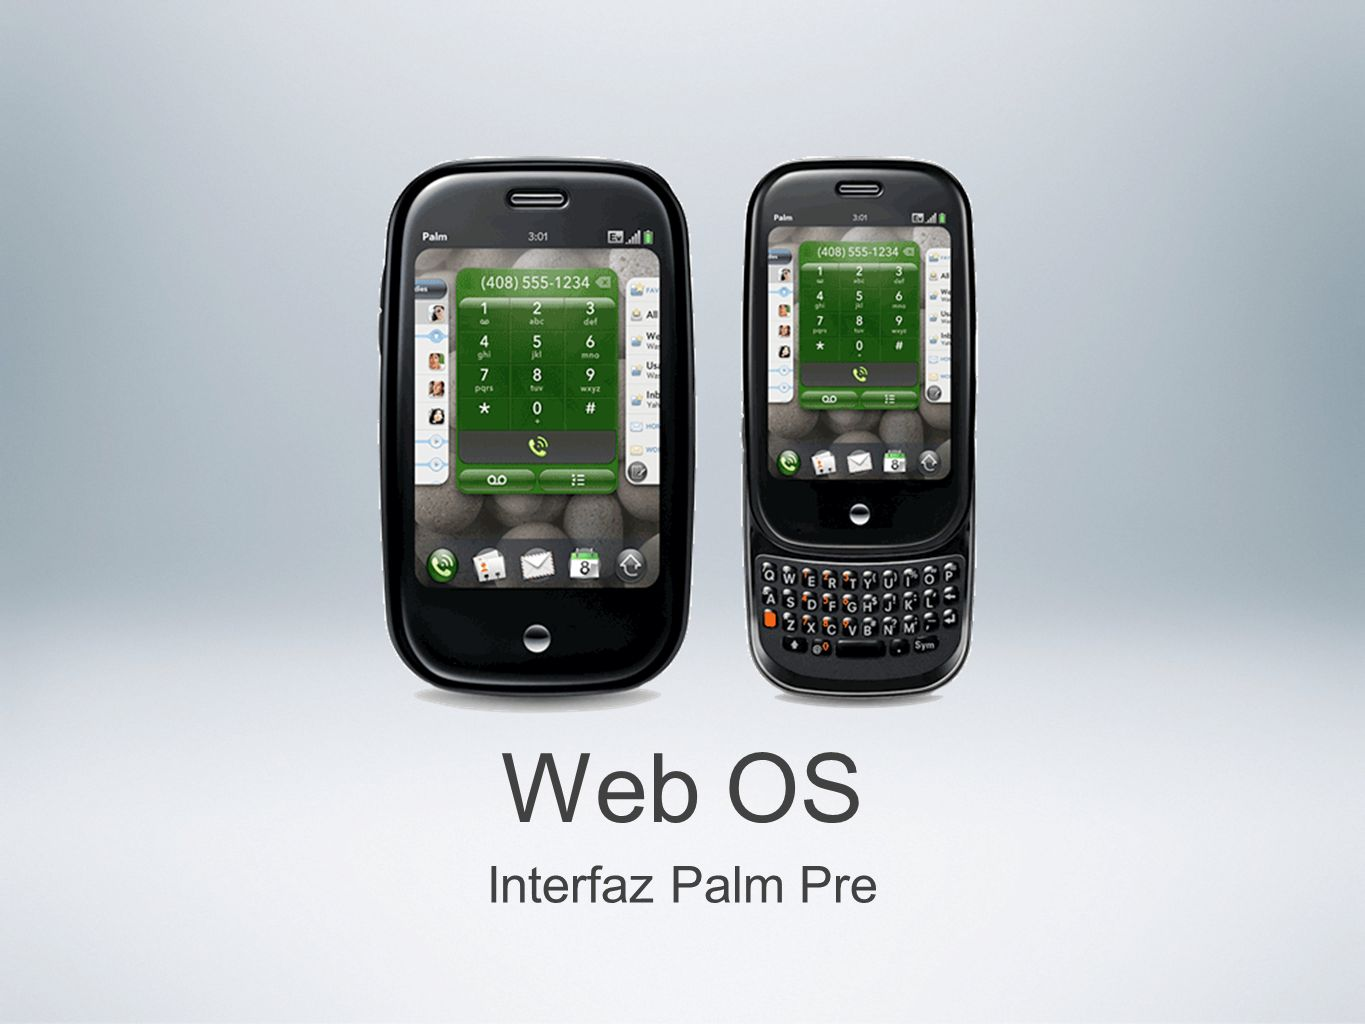 Web OS Interfaz Palm Pre